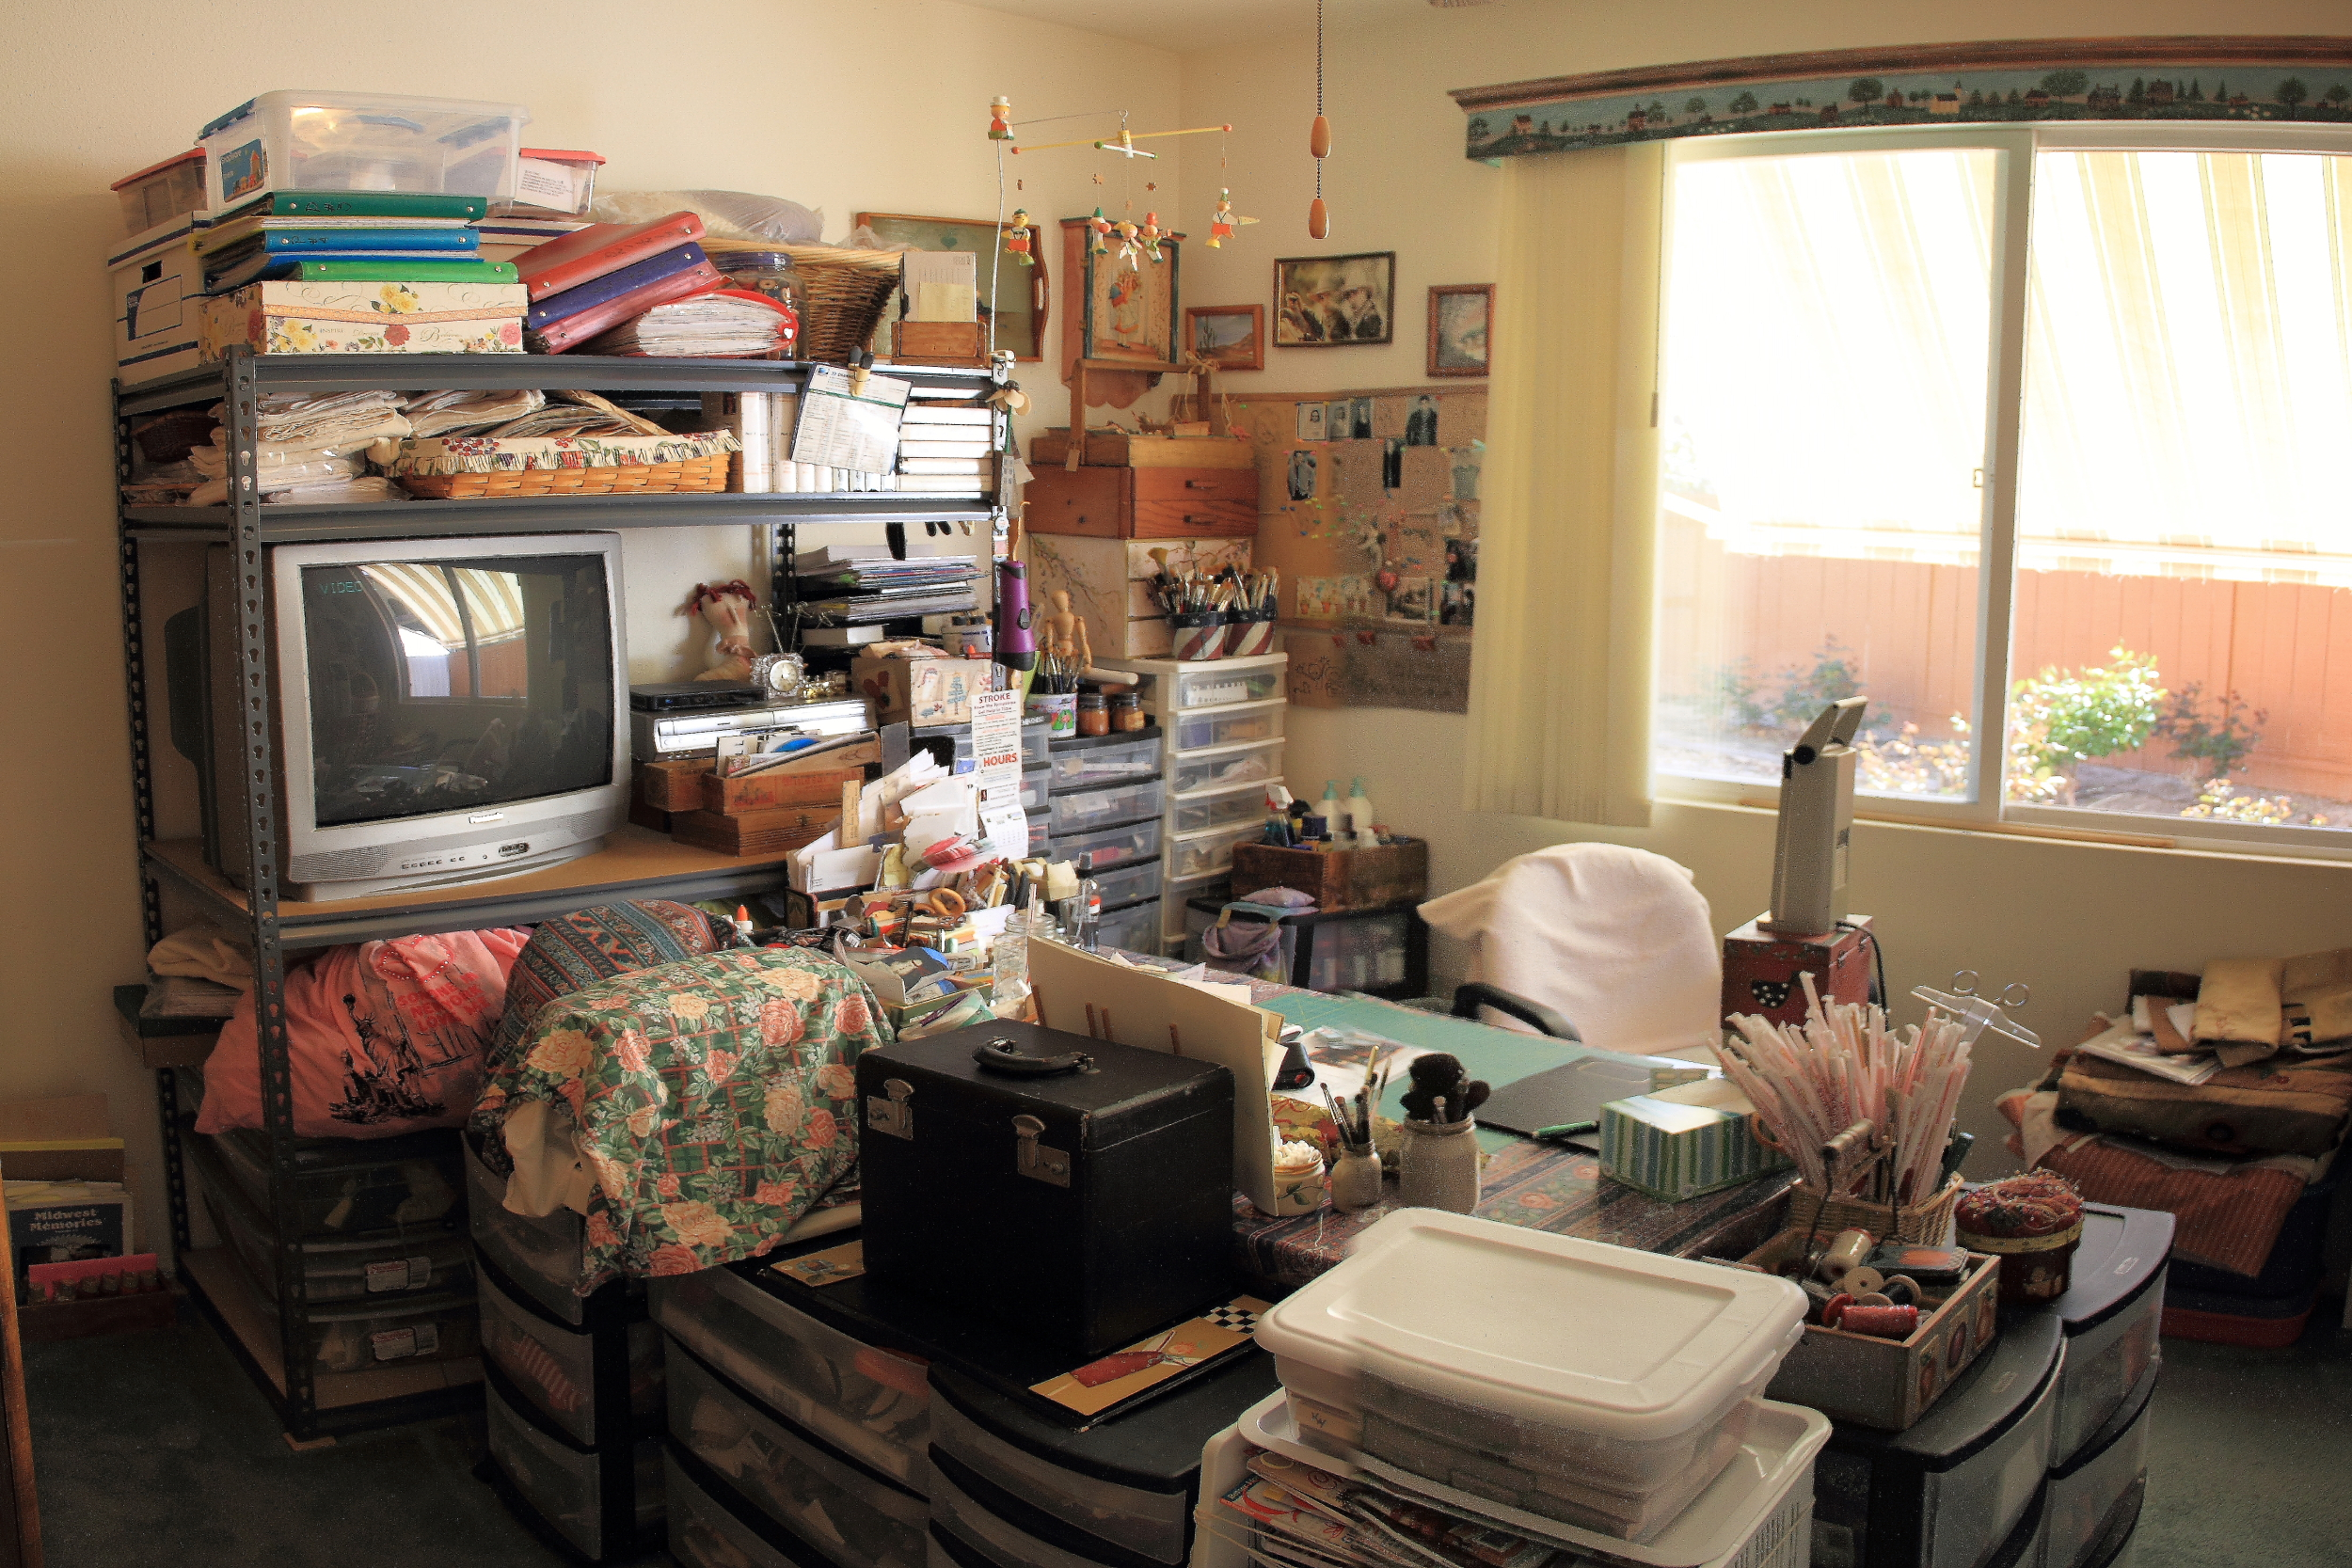 Third bedroom being used as a hobby room.